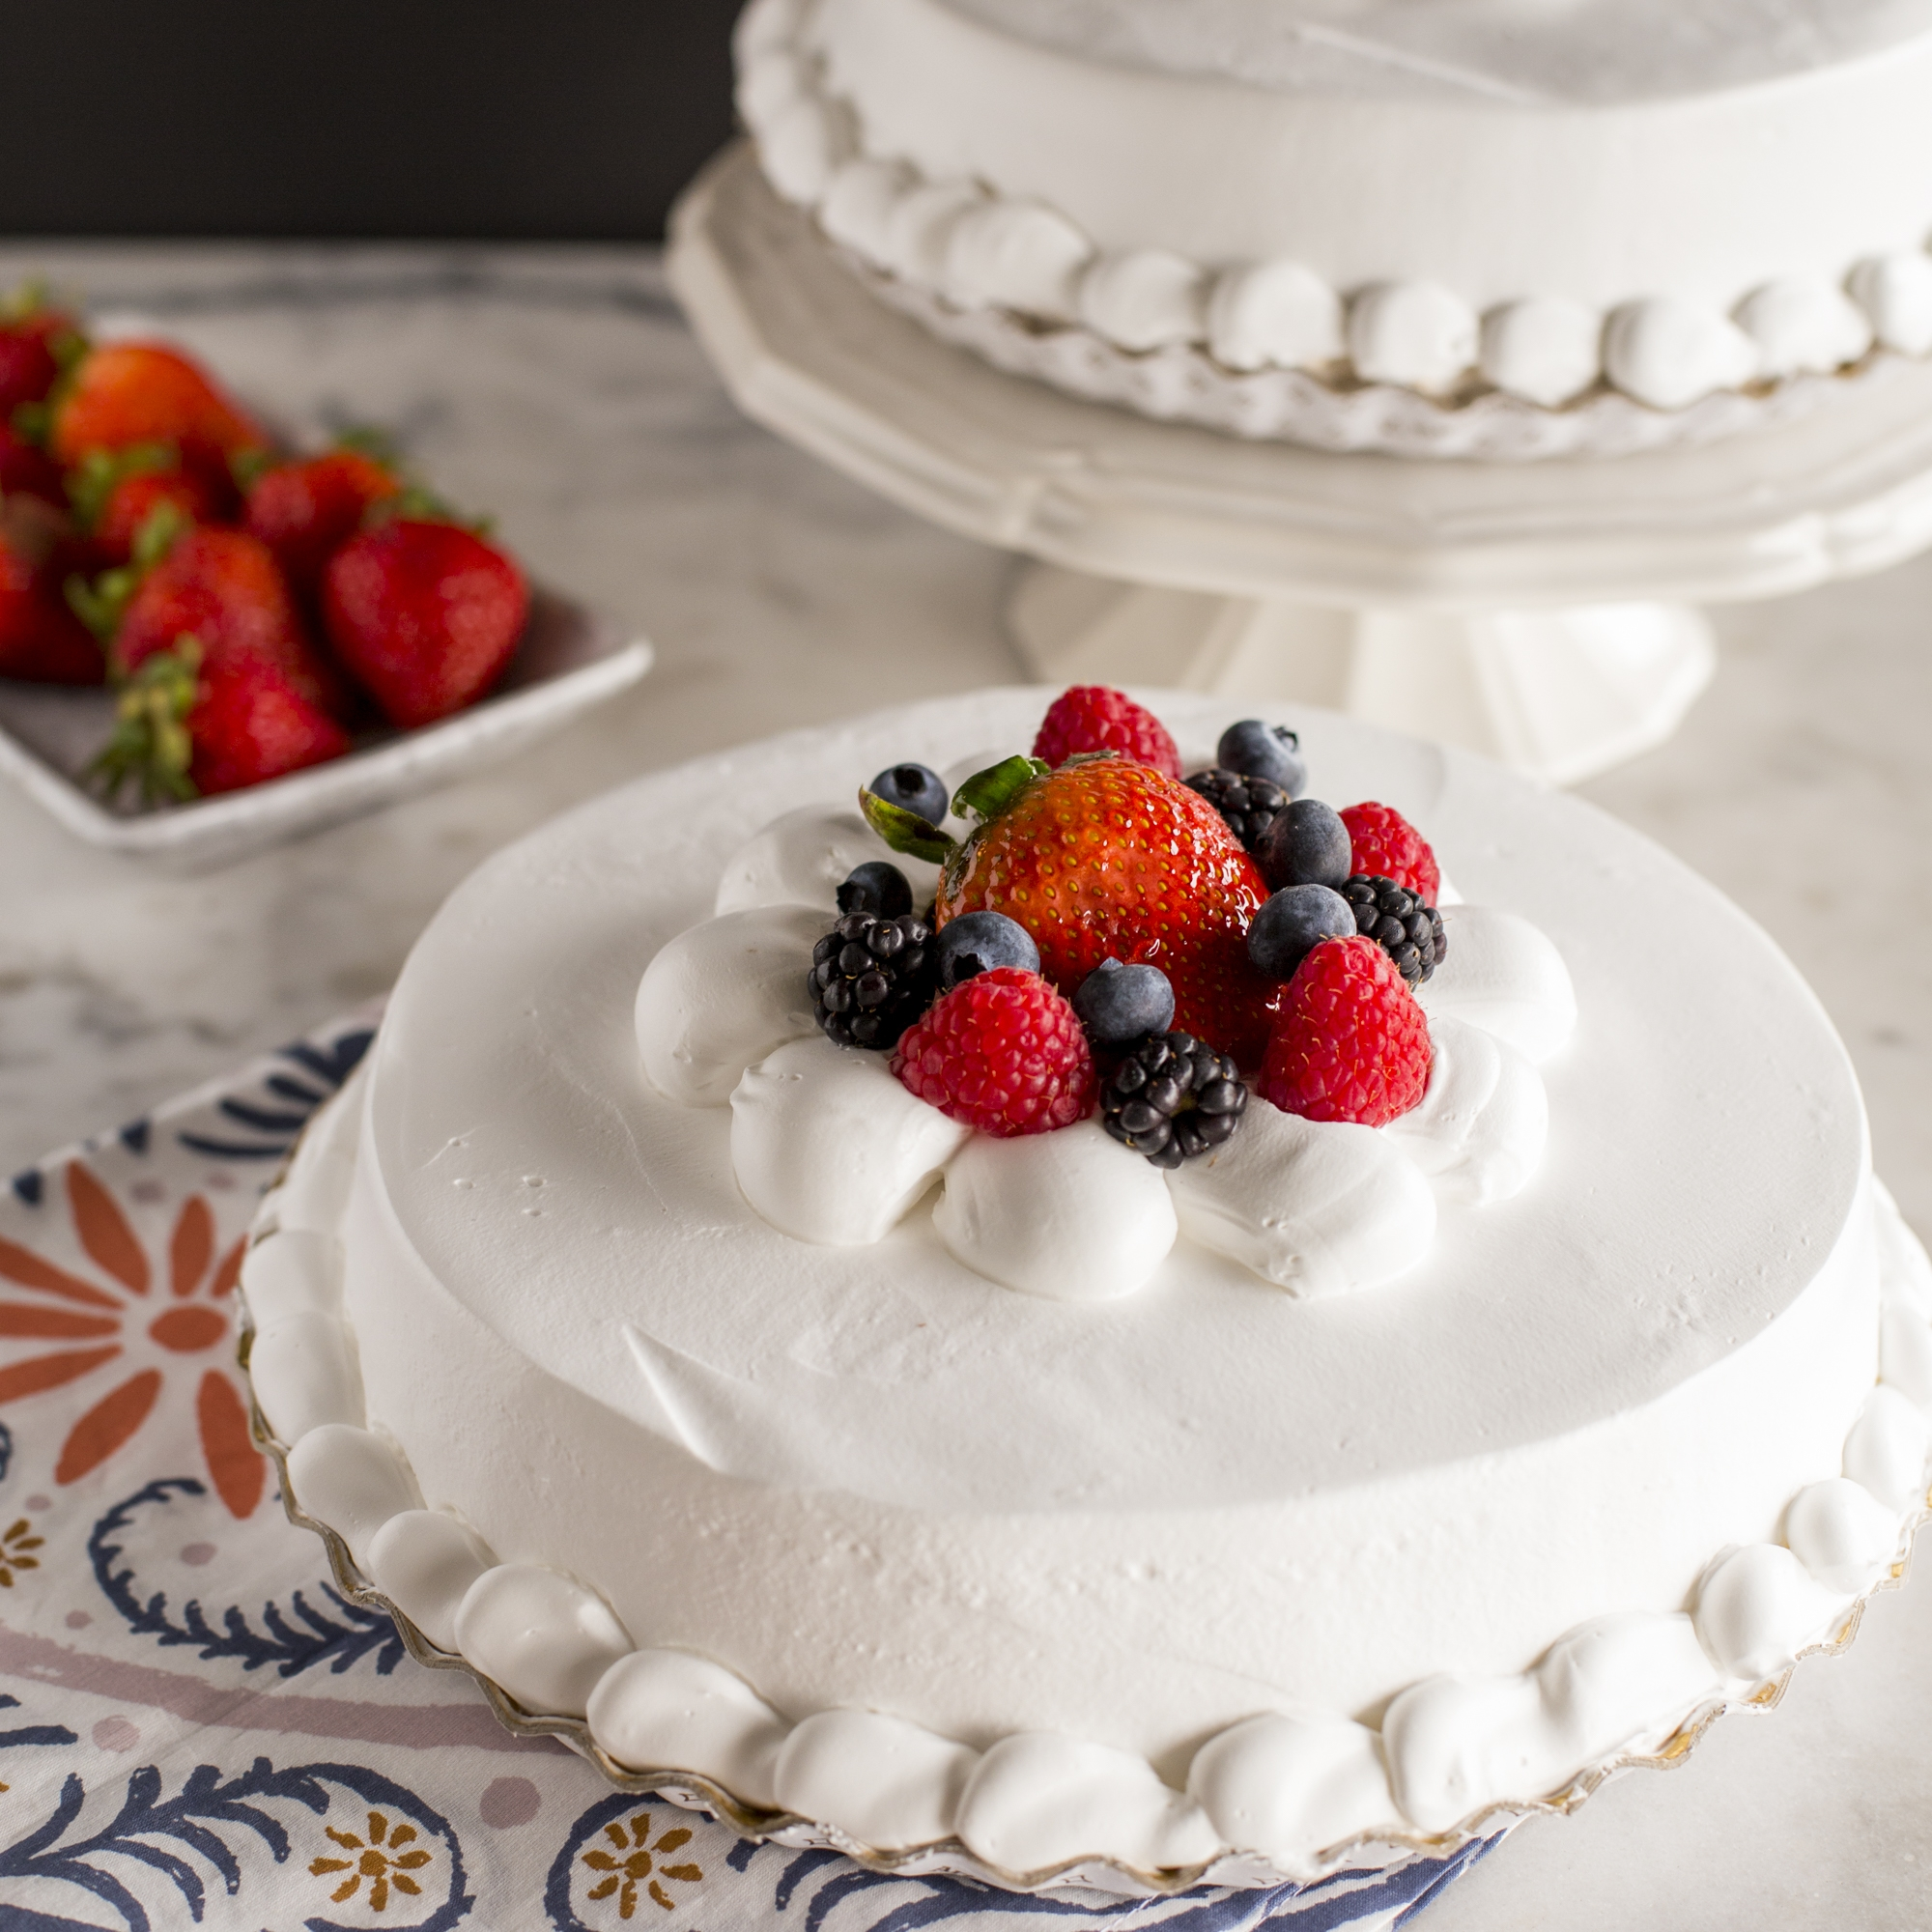 Katella Bakery specialty cake with fresh berries